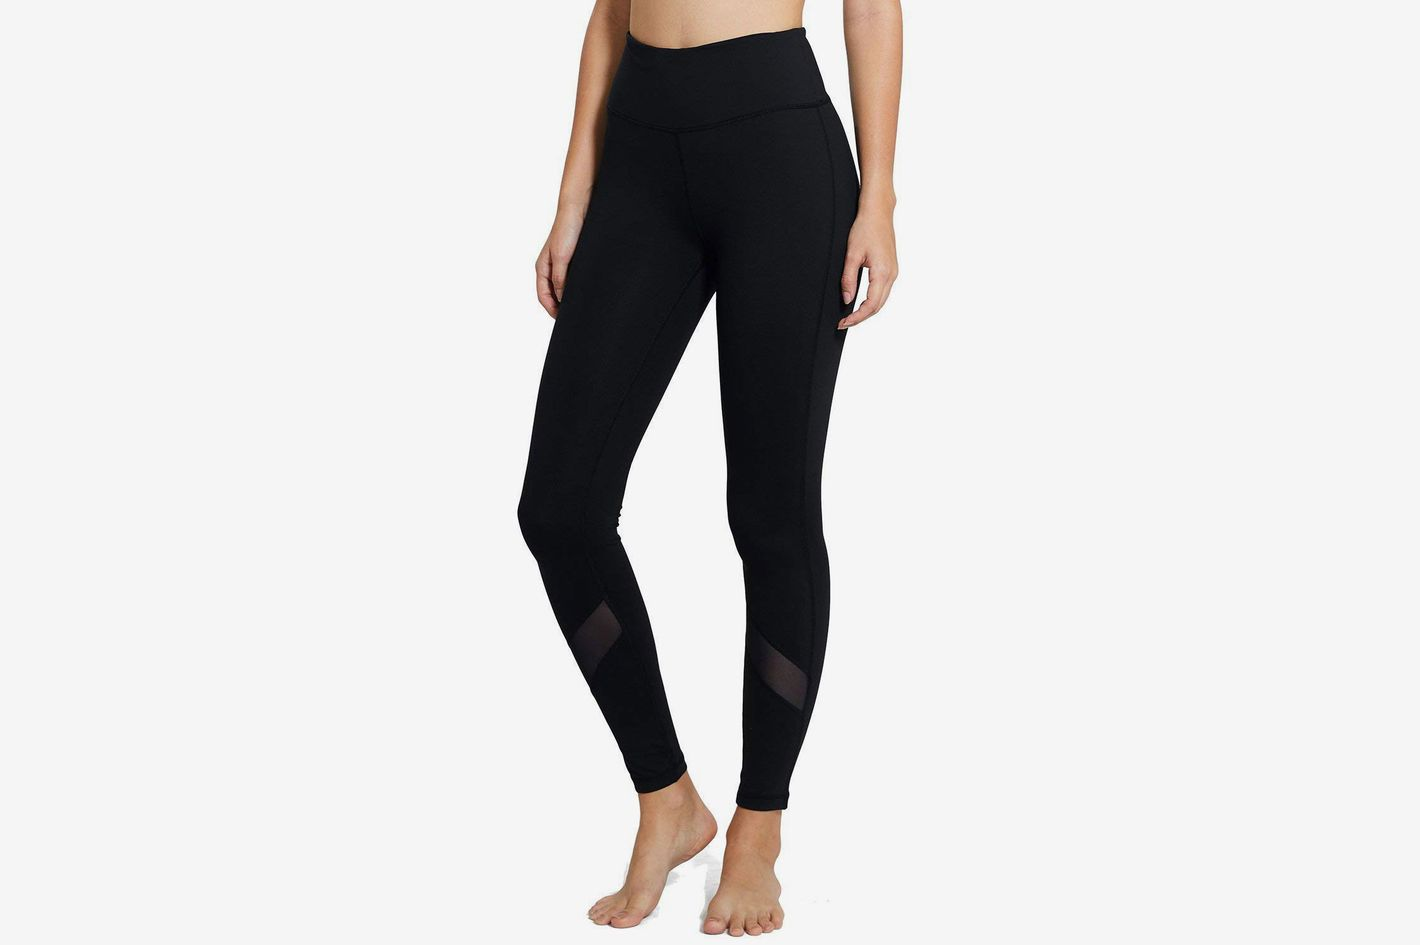 The 17 Best Yoga Pants For Women Reviewed 2018